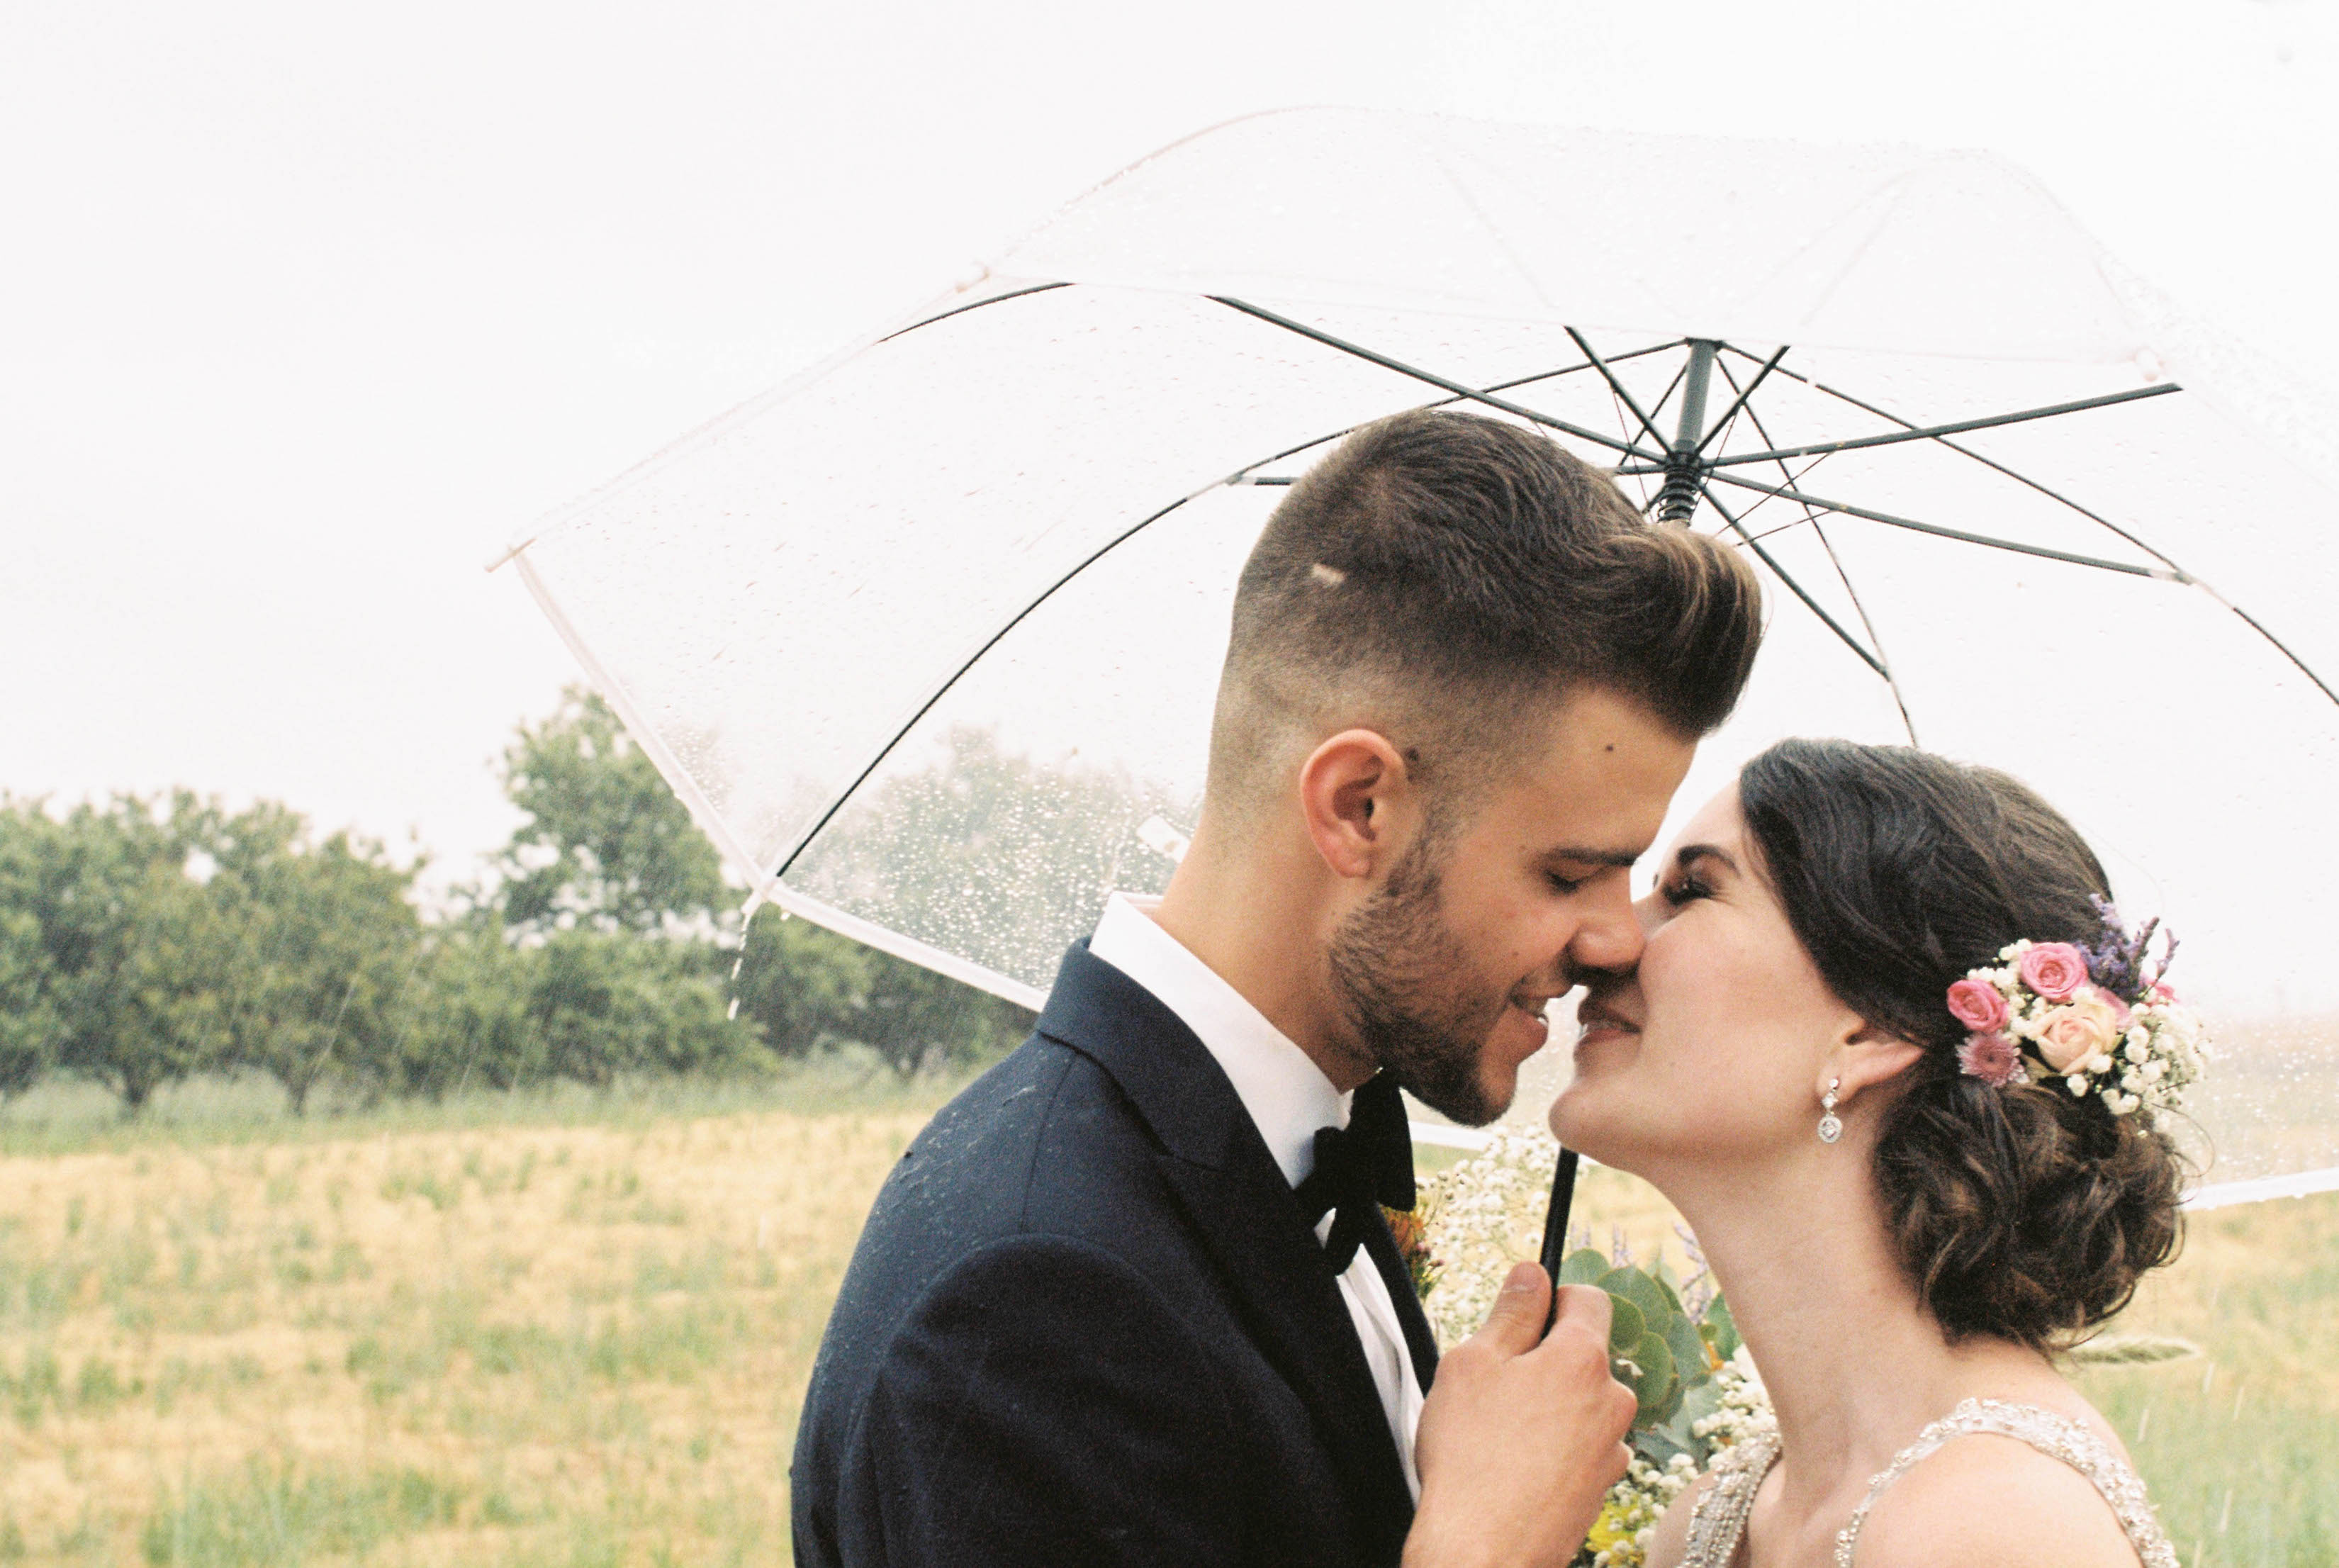 Candid wedding photography of the bride & groom sharing a moment under a clear plastic umbrella